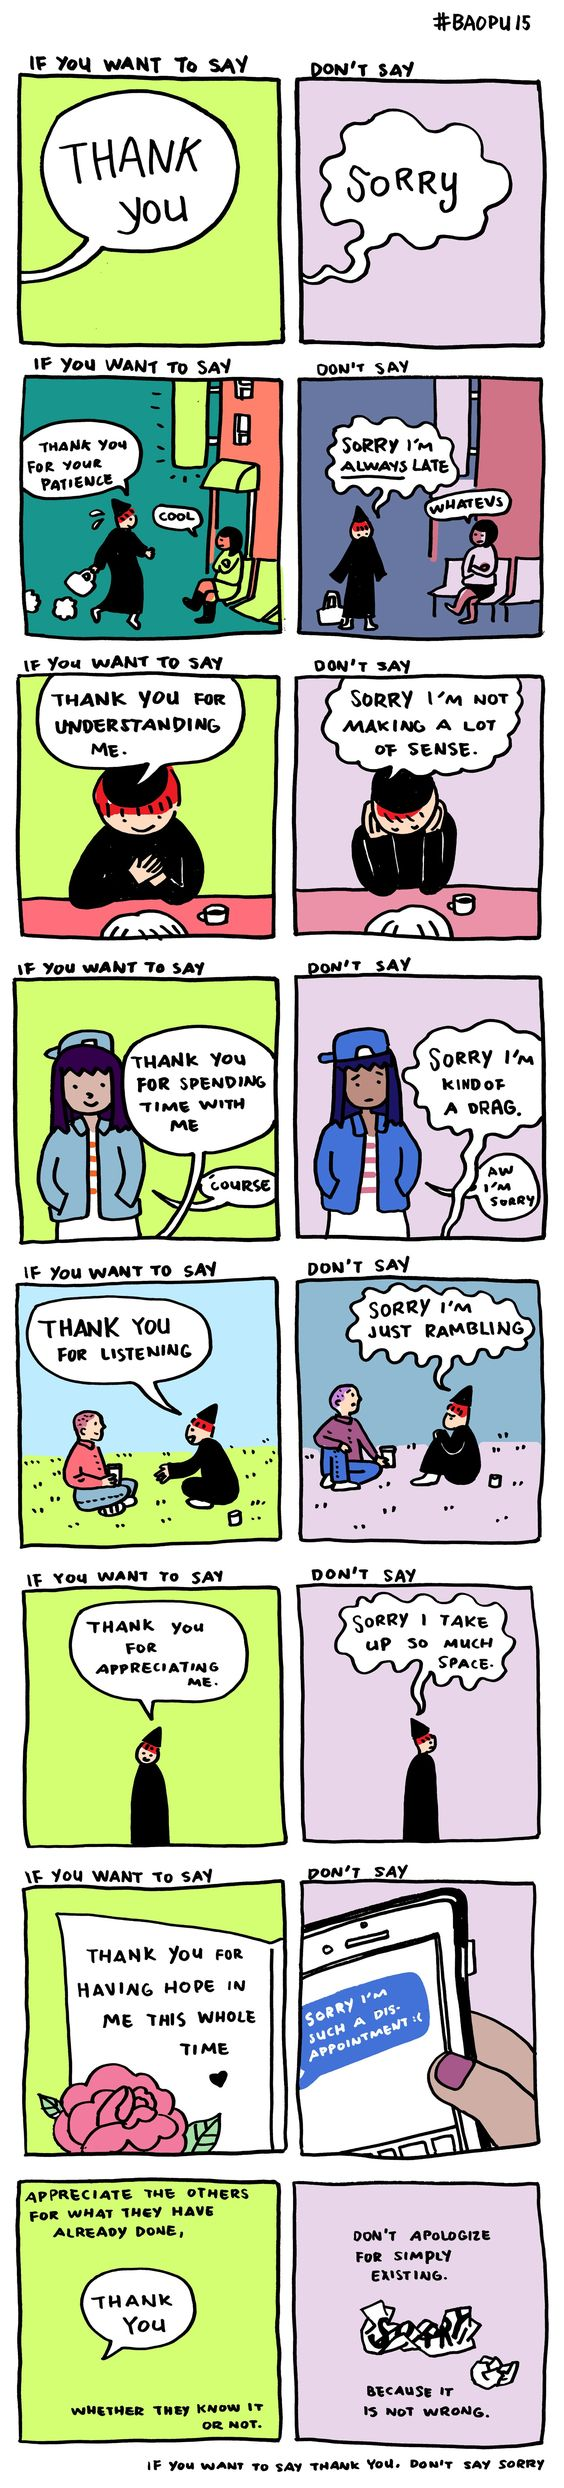 An 8-part comic for people who say 'I'm sorry' too often